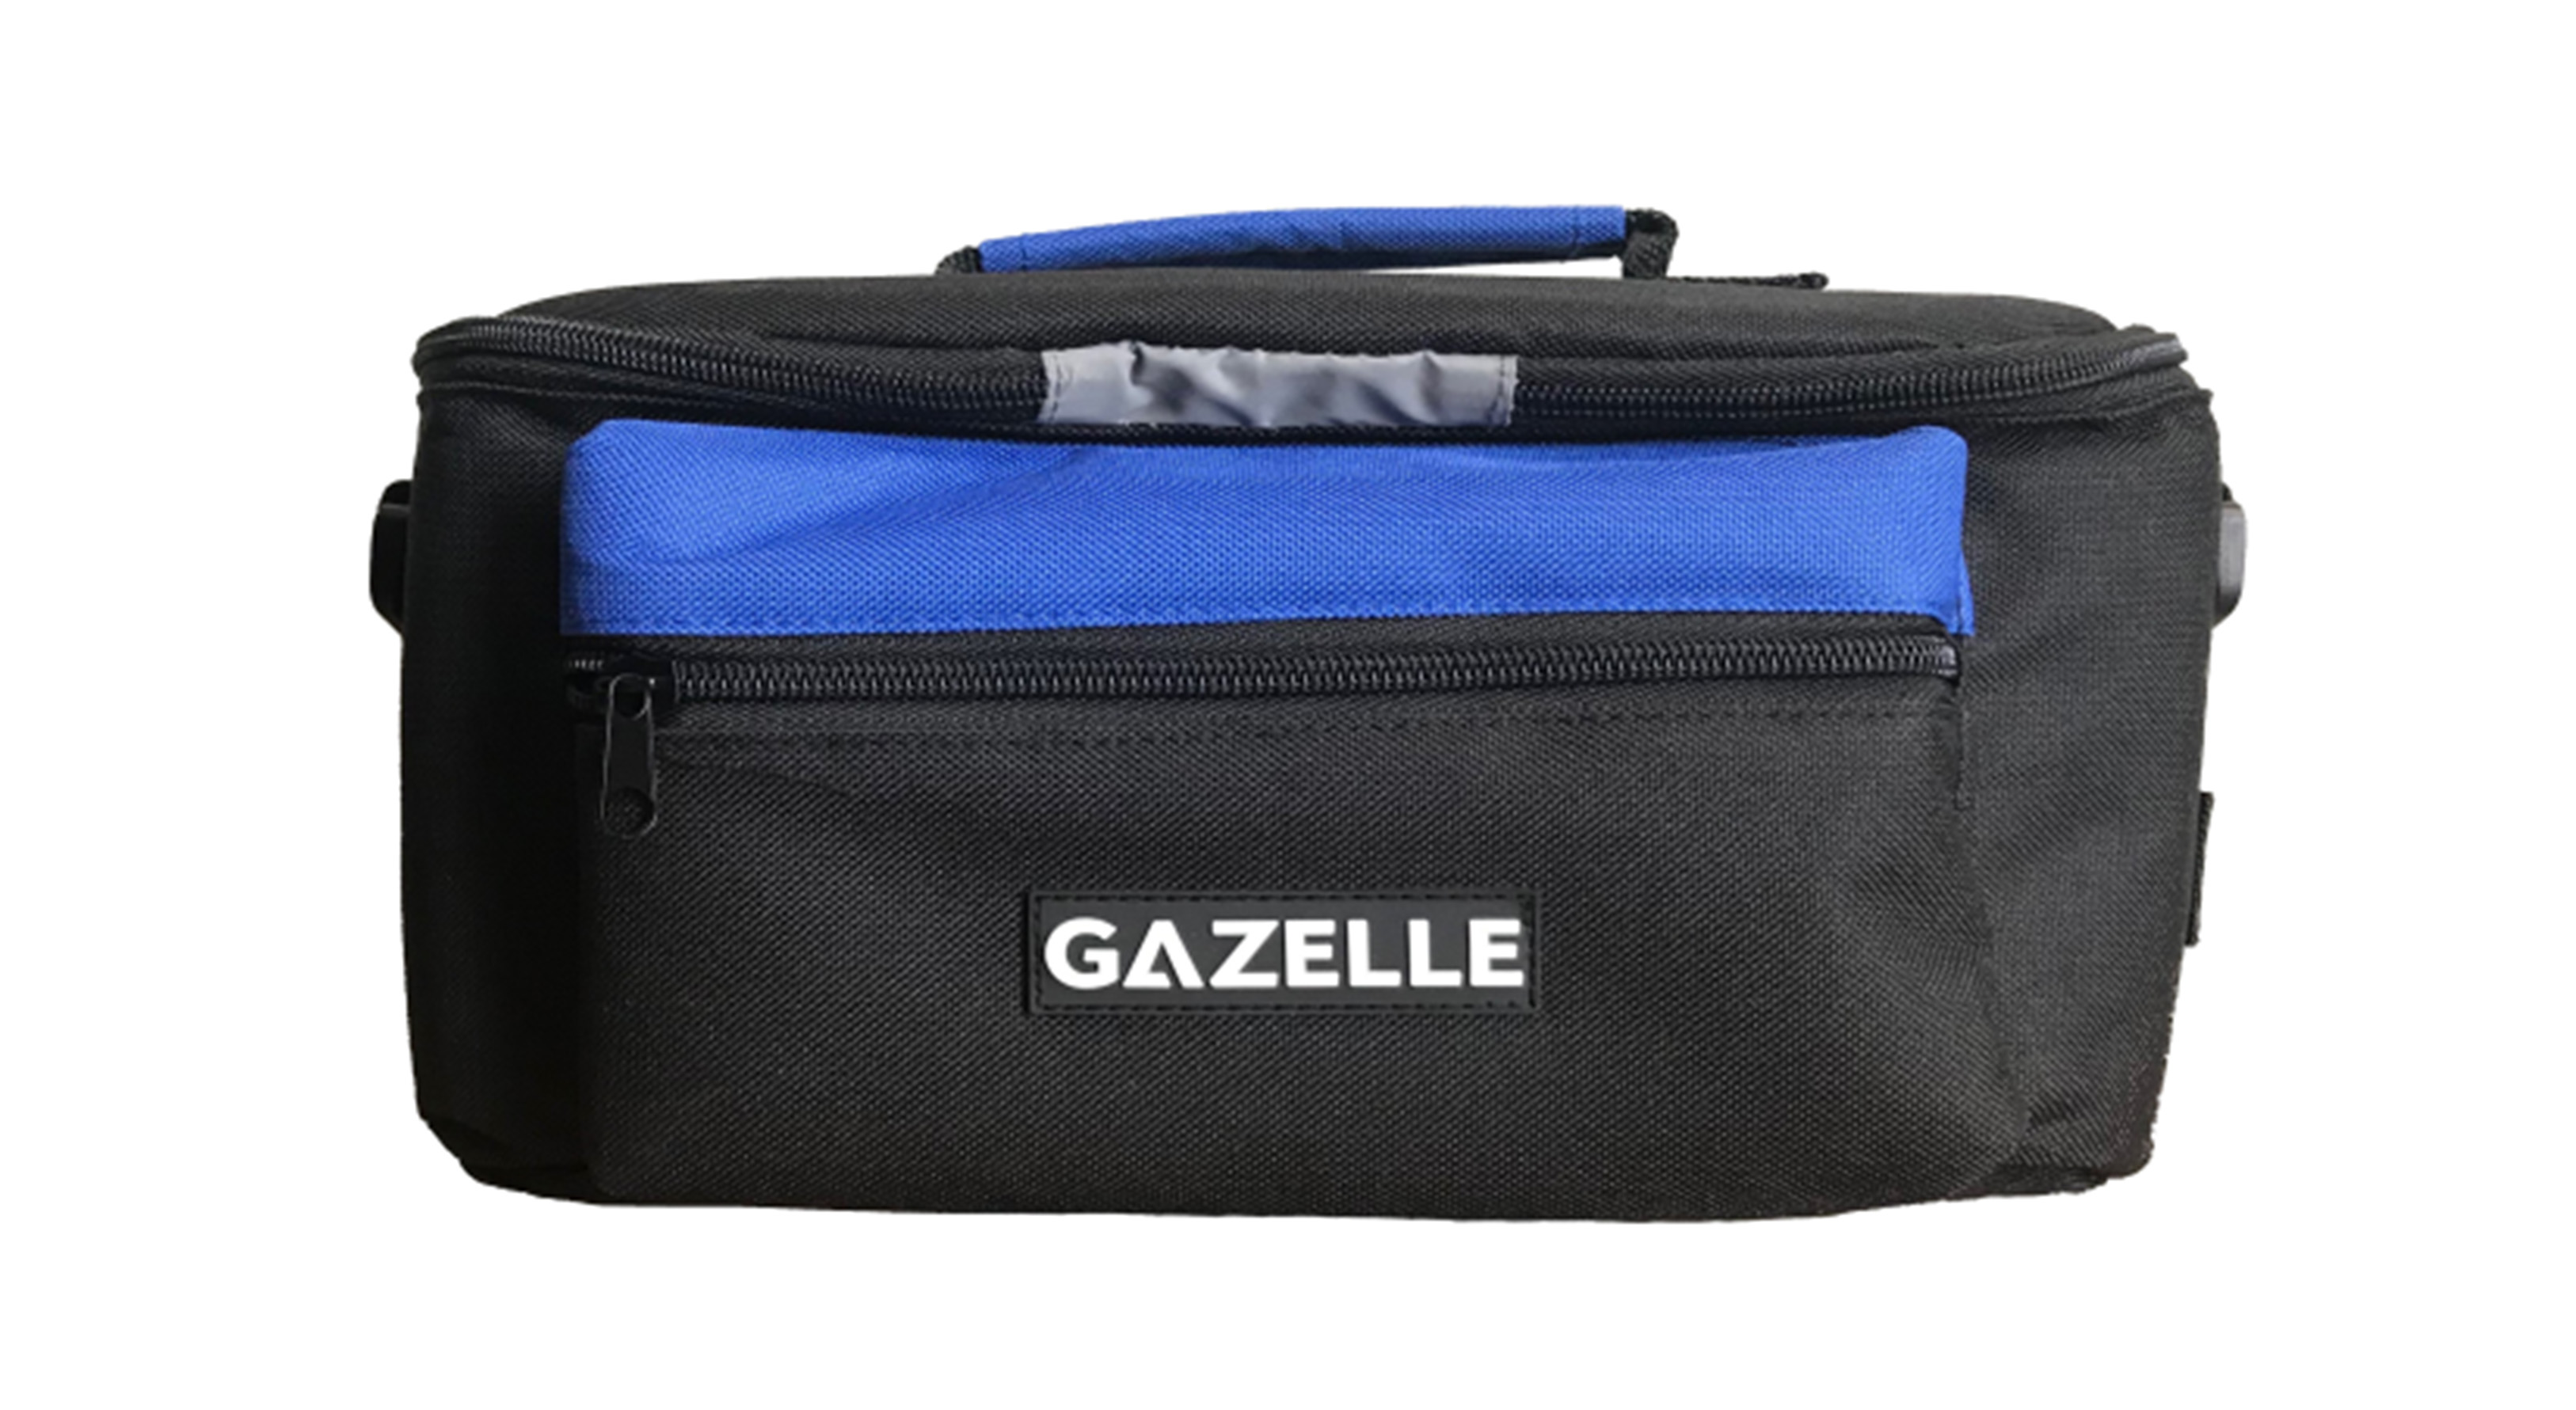 GAZELLE G8202 - 8 Pocket Tool BumbagSize: 11.4in L x 5.12in W x 6.7in H with shoulder strap and belt